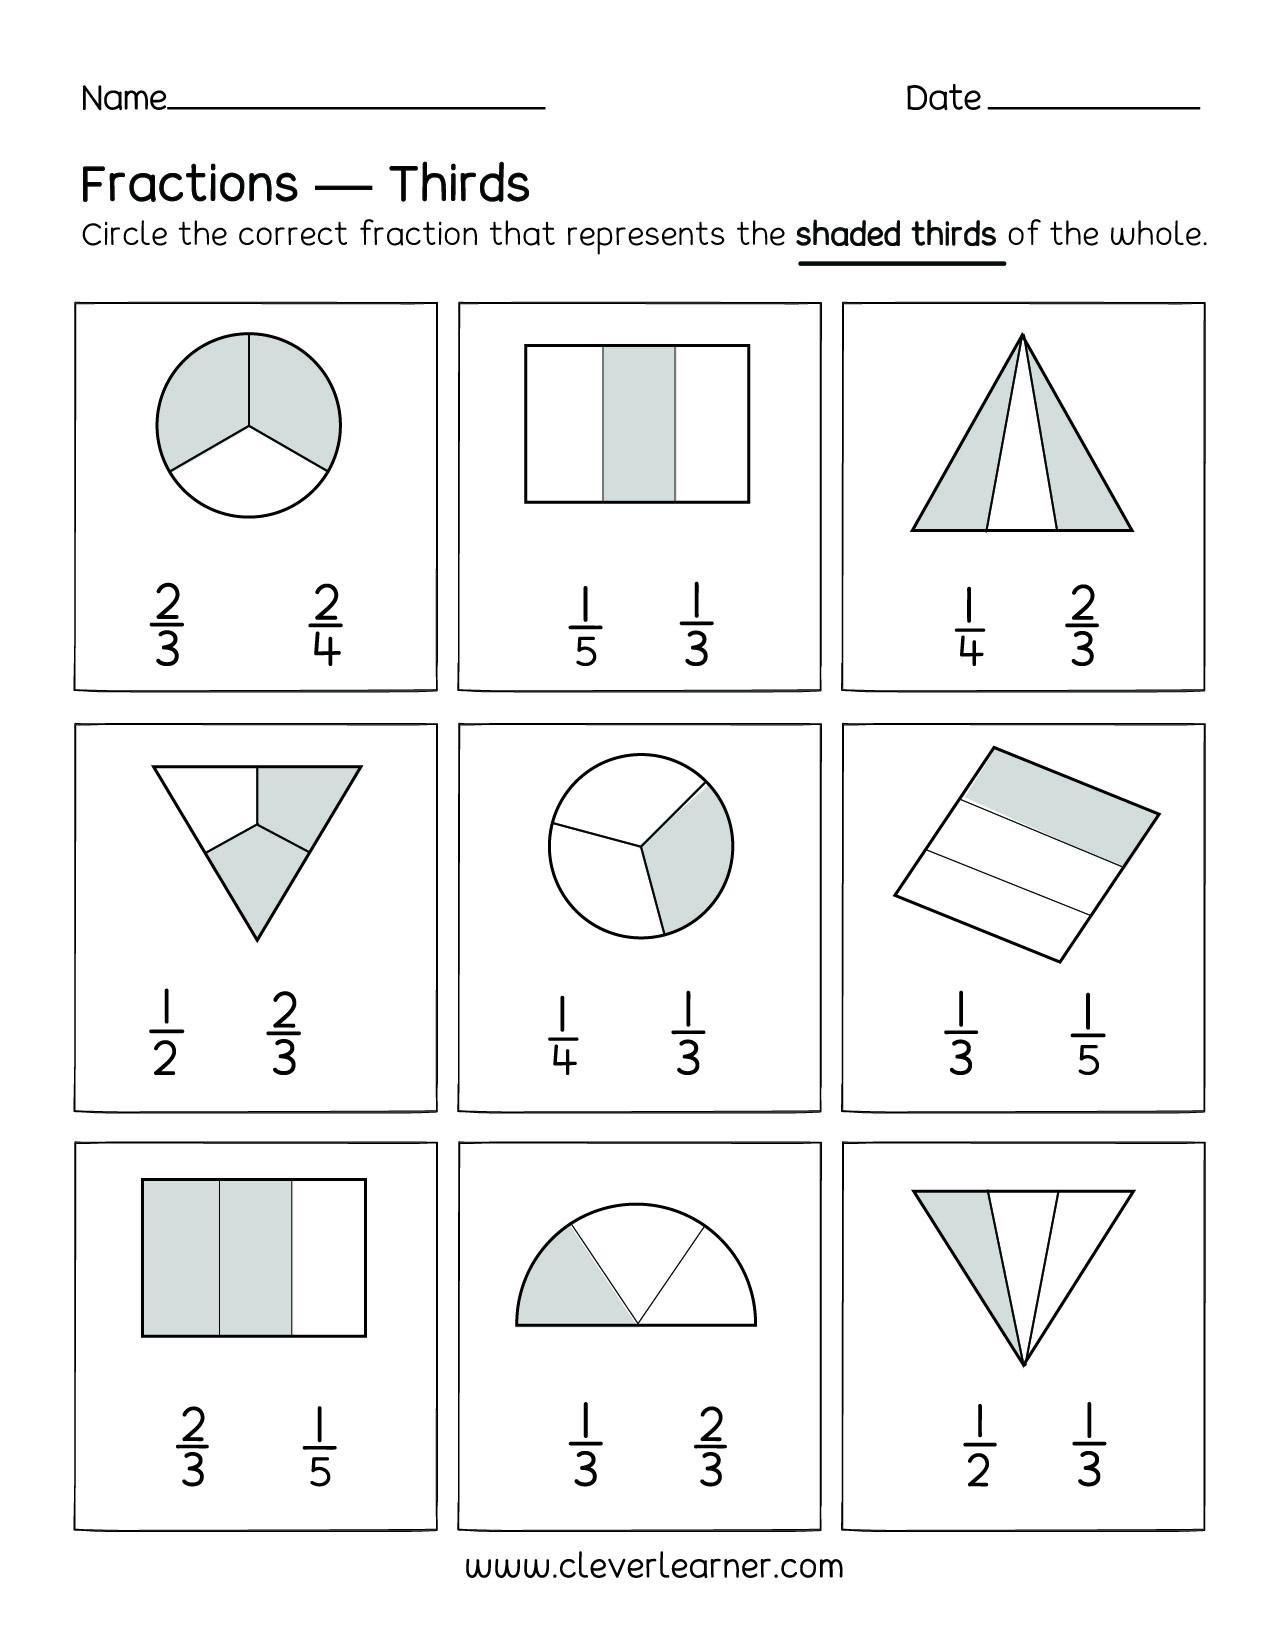 Fraction Worksheets First Grade Fun Activity Fractions Thirds Worksheets for Children